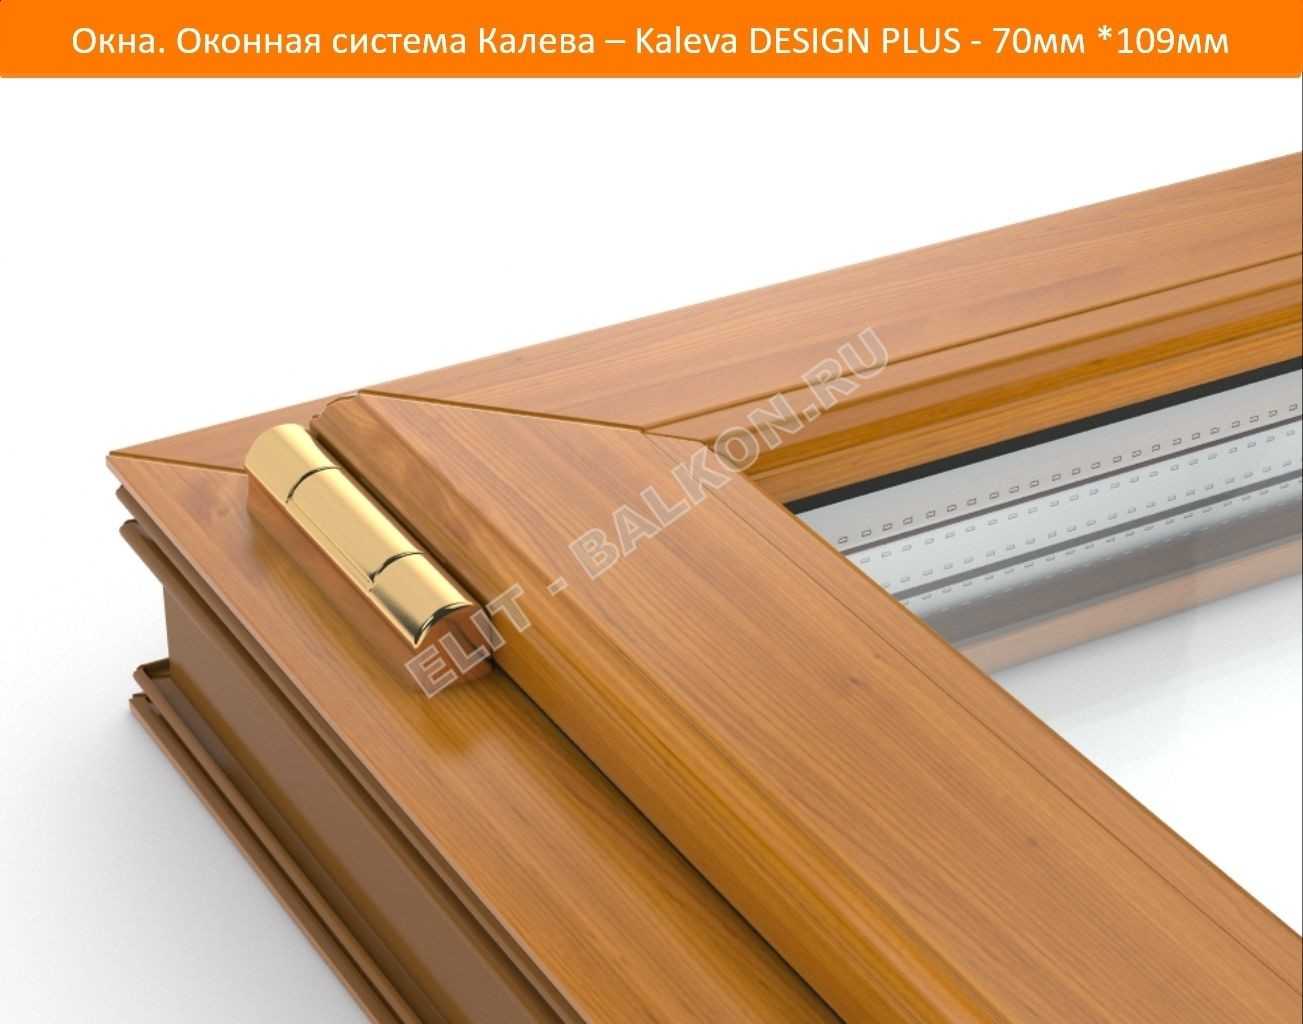 Okna. Okonnaya sistema Kaleva Kaleva DESIGN PLUS 70mm 109mm 5 1 - DESIGN PLUS – на страже вашего покоя!